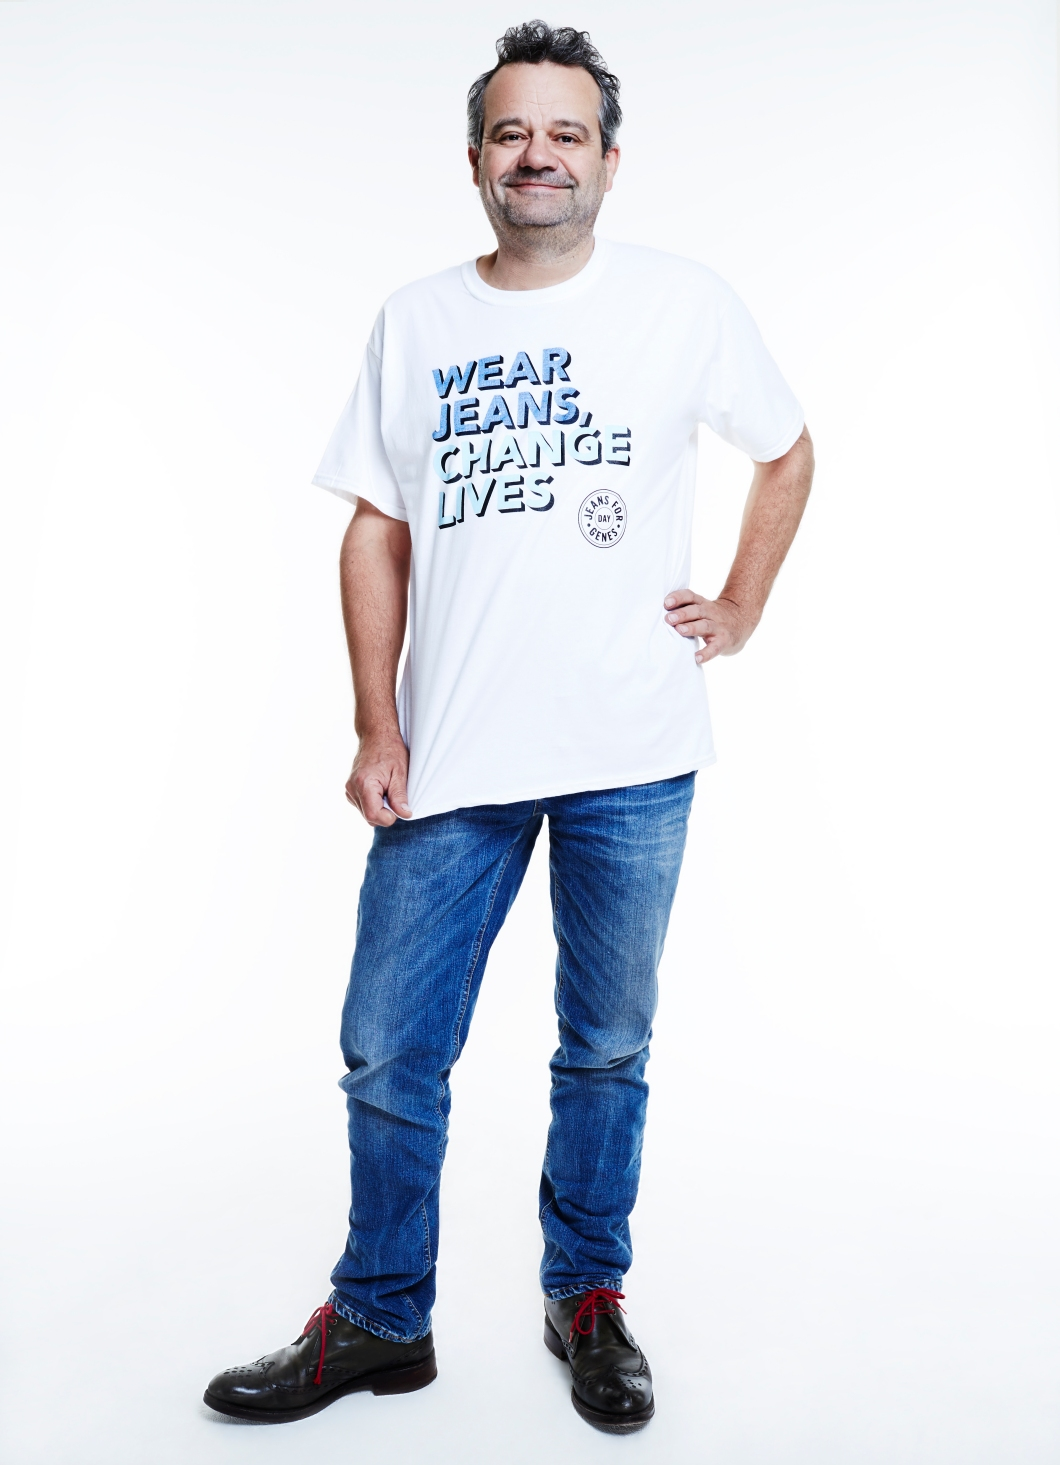 Mark Hix, chef in Jeans for Genes white campaign t-shirt